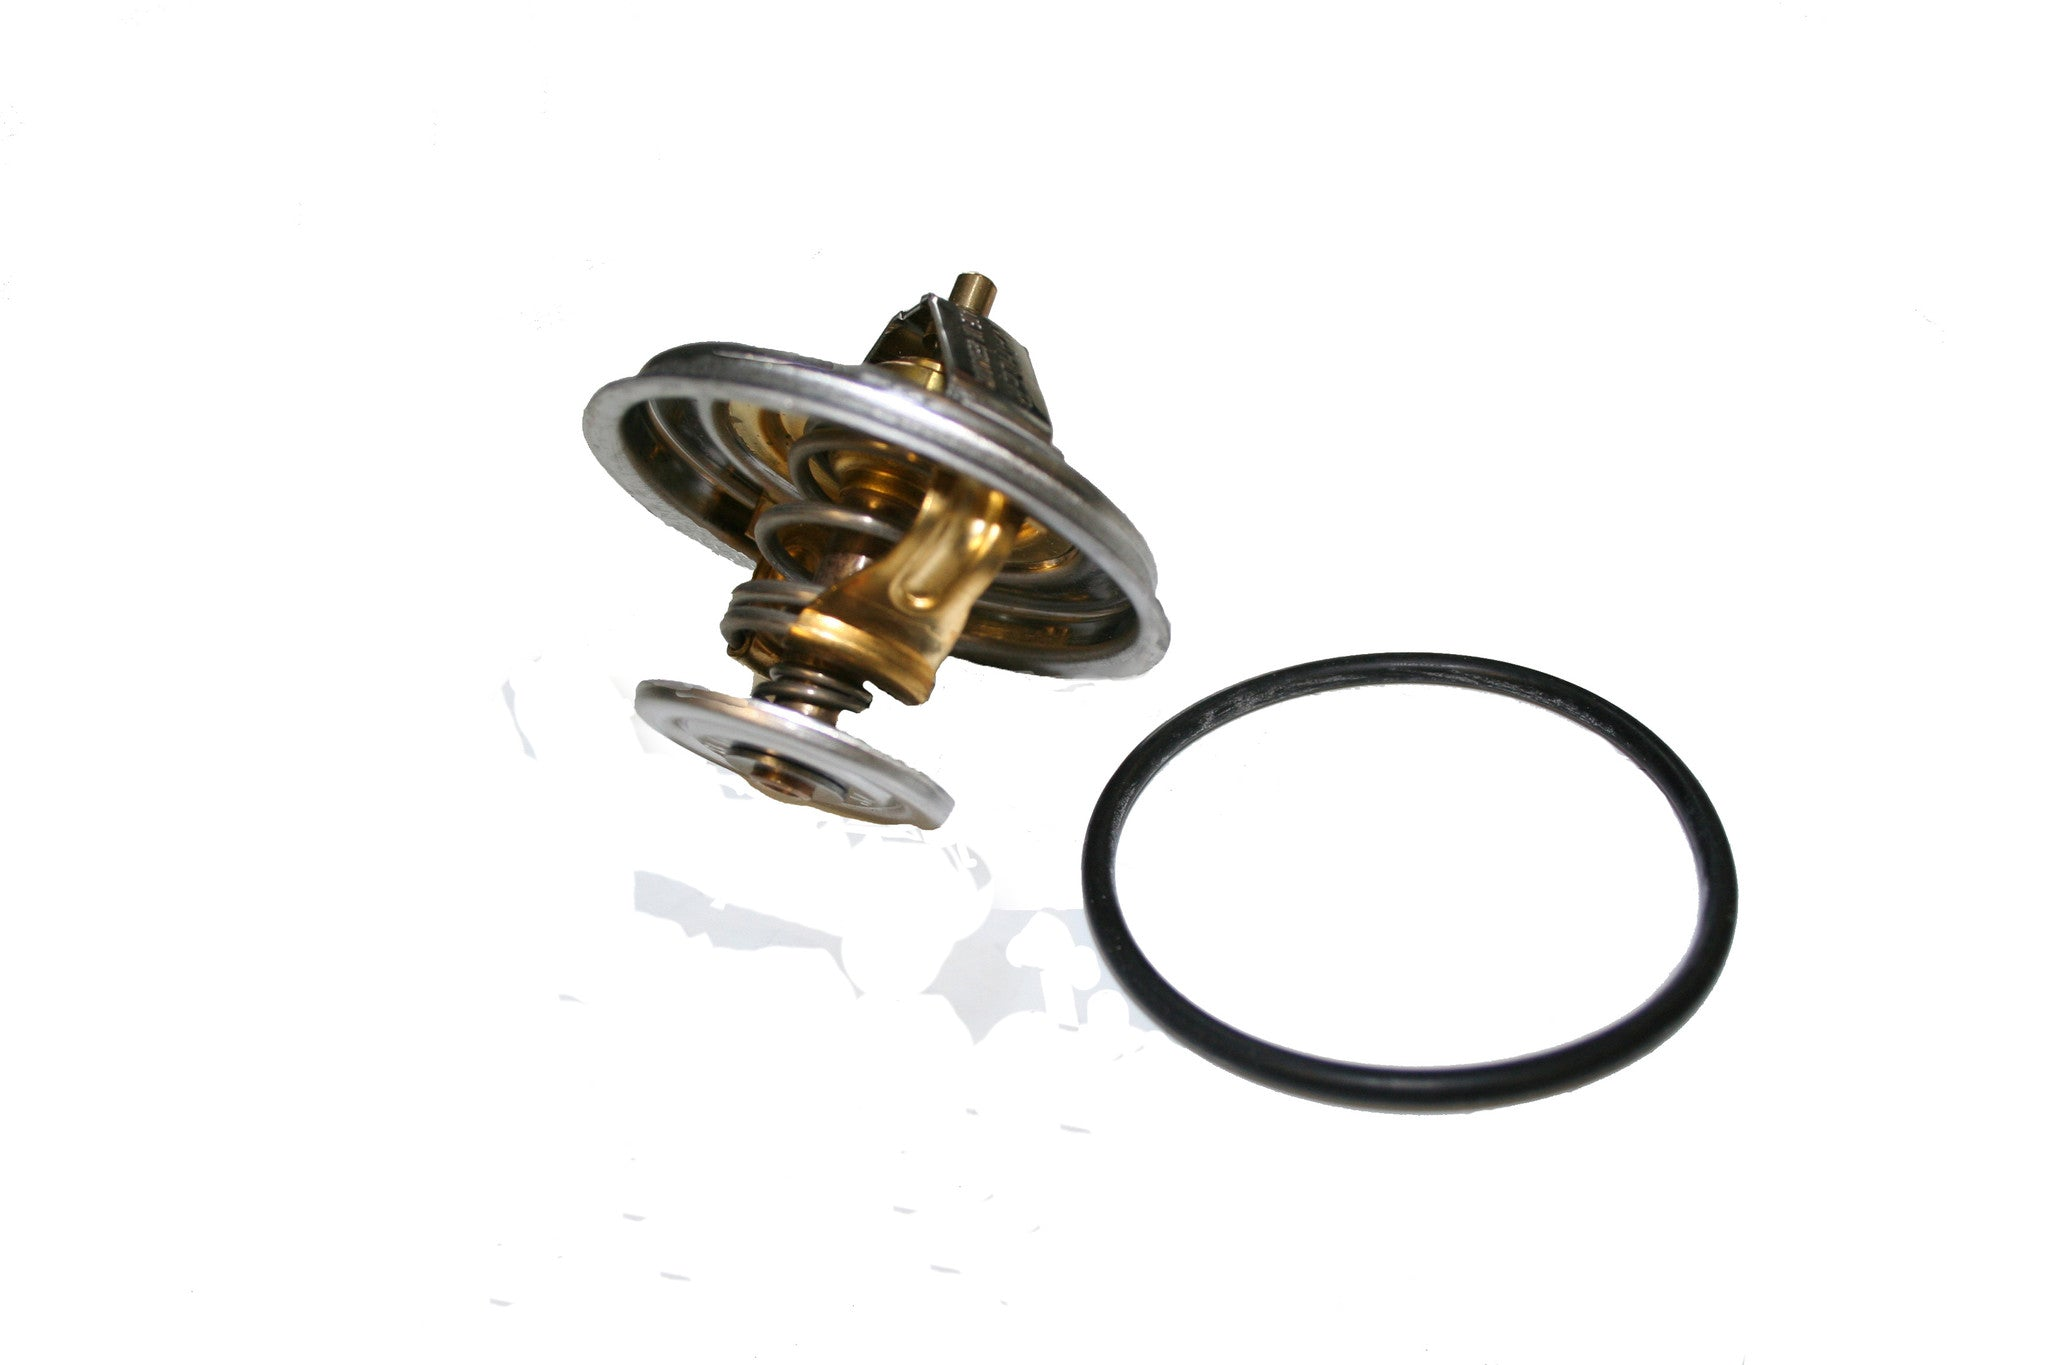 M50, S50, S52 High Performance Thermostat | BMW E36 325 328 M3 Z3M